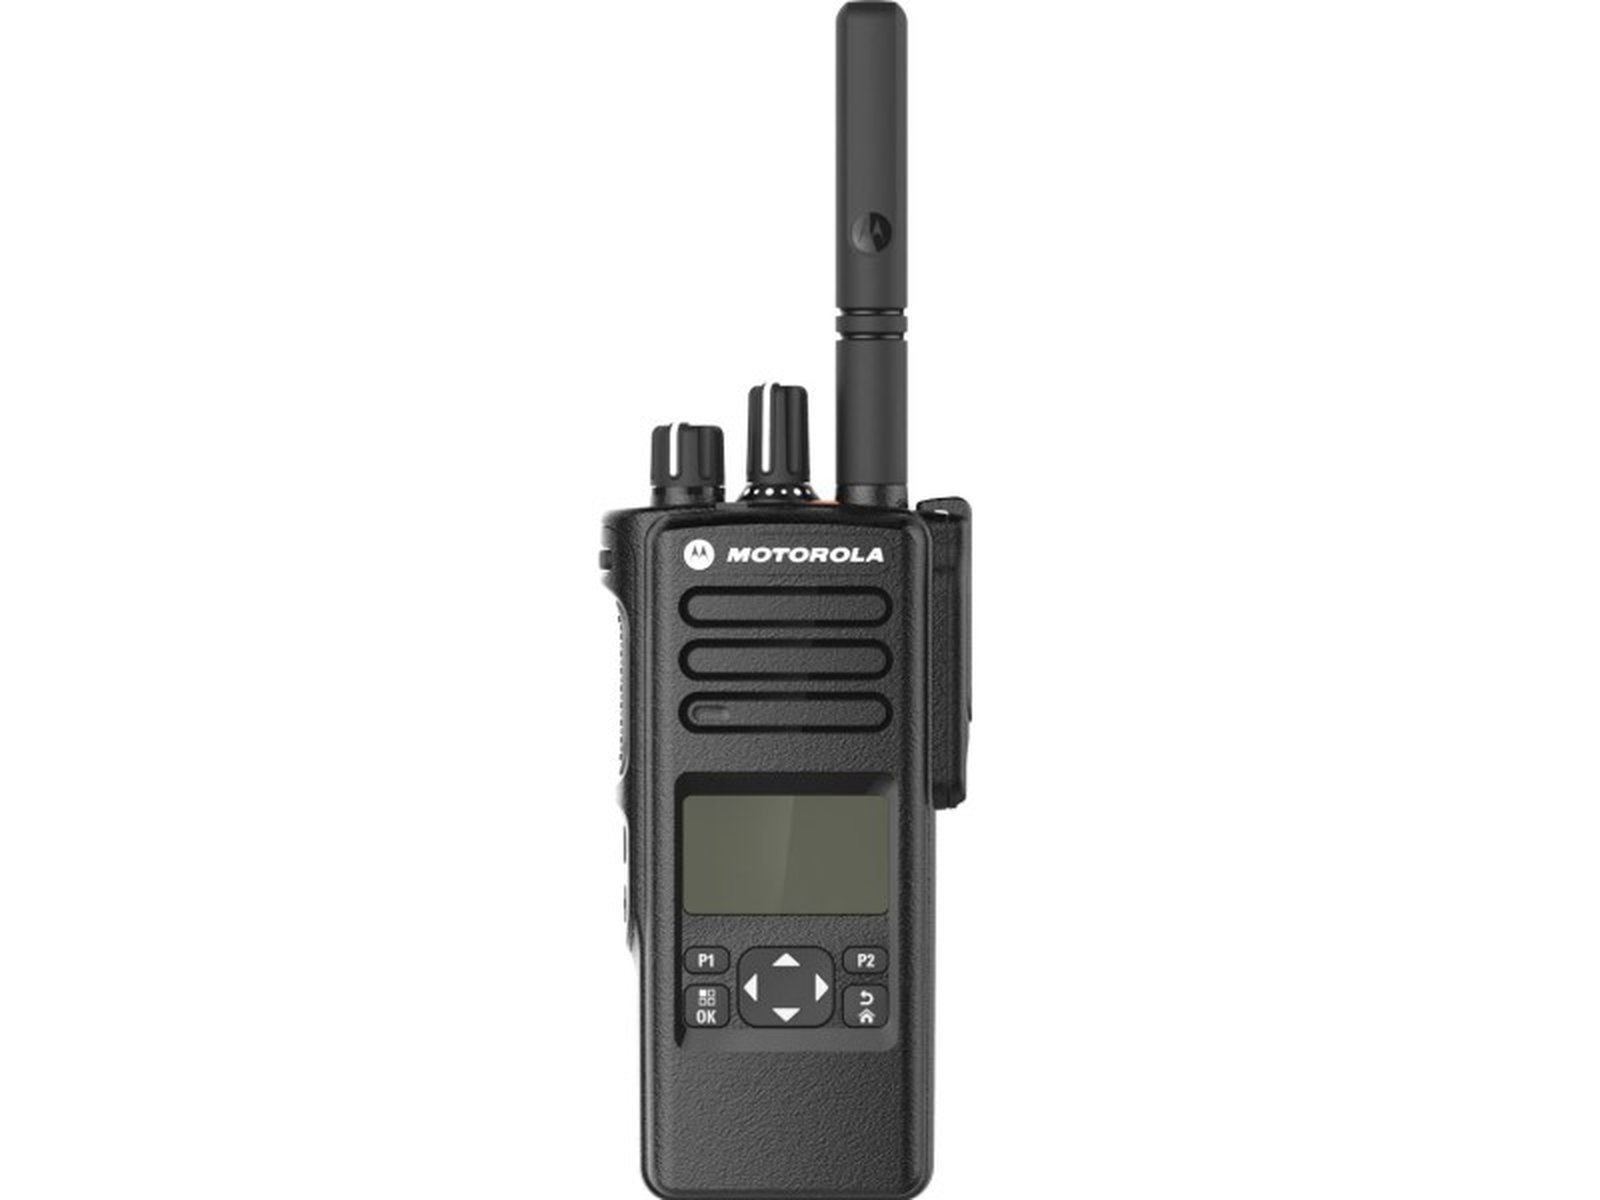 Motorola DP4600e (enhanced) DMR Handfunkgerät